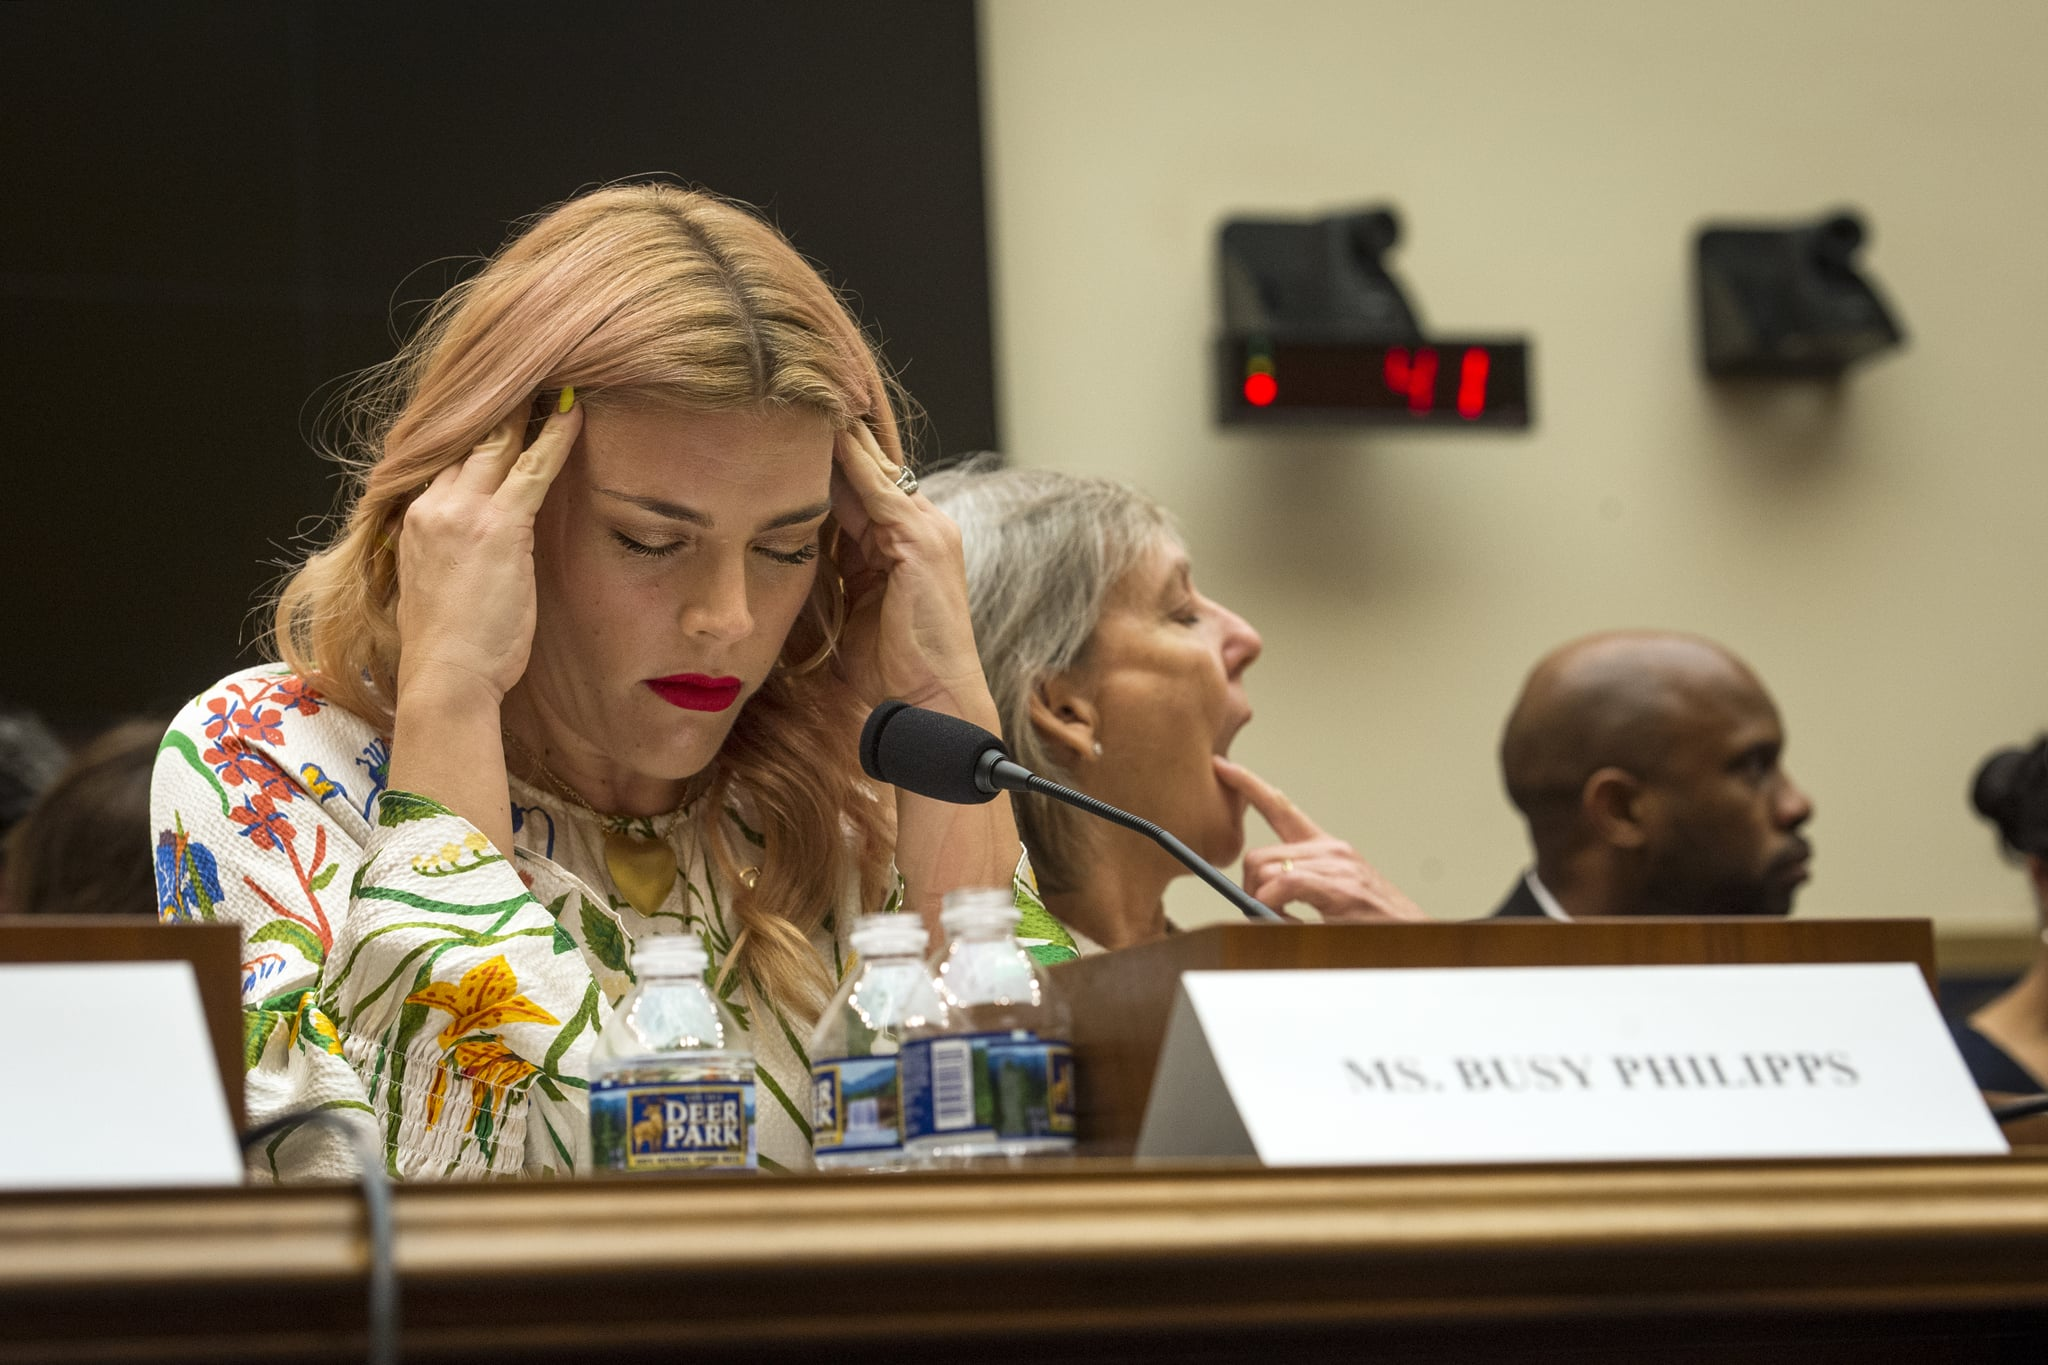 UNITED STATES - JUNE 4: Actress Busy Philipps prepares to testify at the House Judiciary Subcommittee on Constitution, Civil Rights and Civil Liberties hearing titled